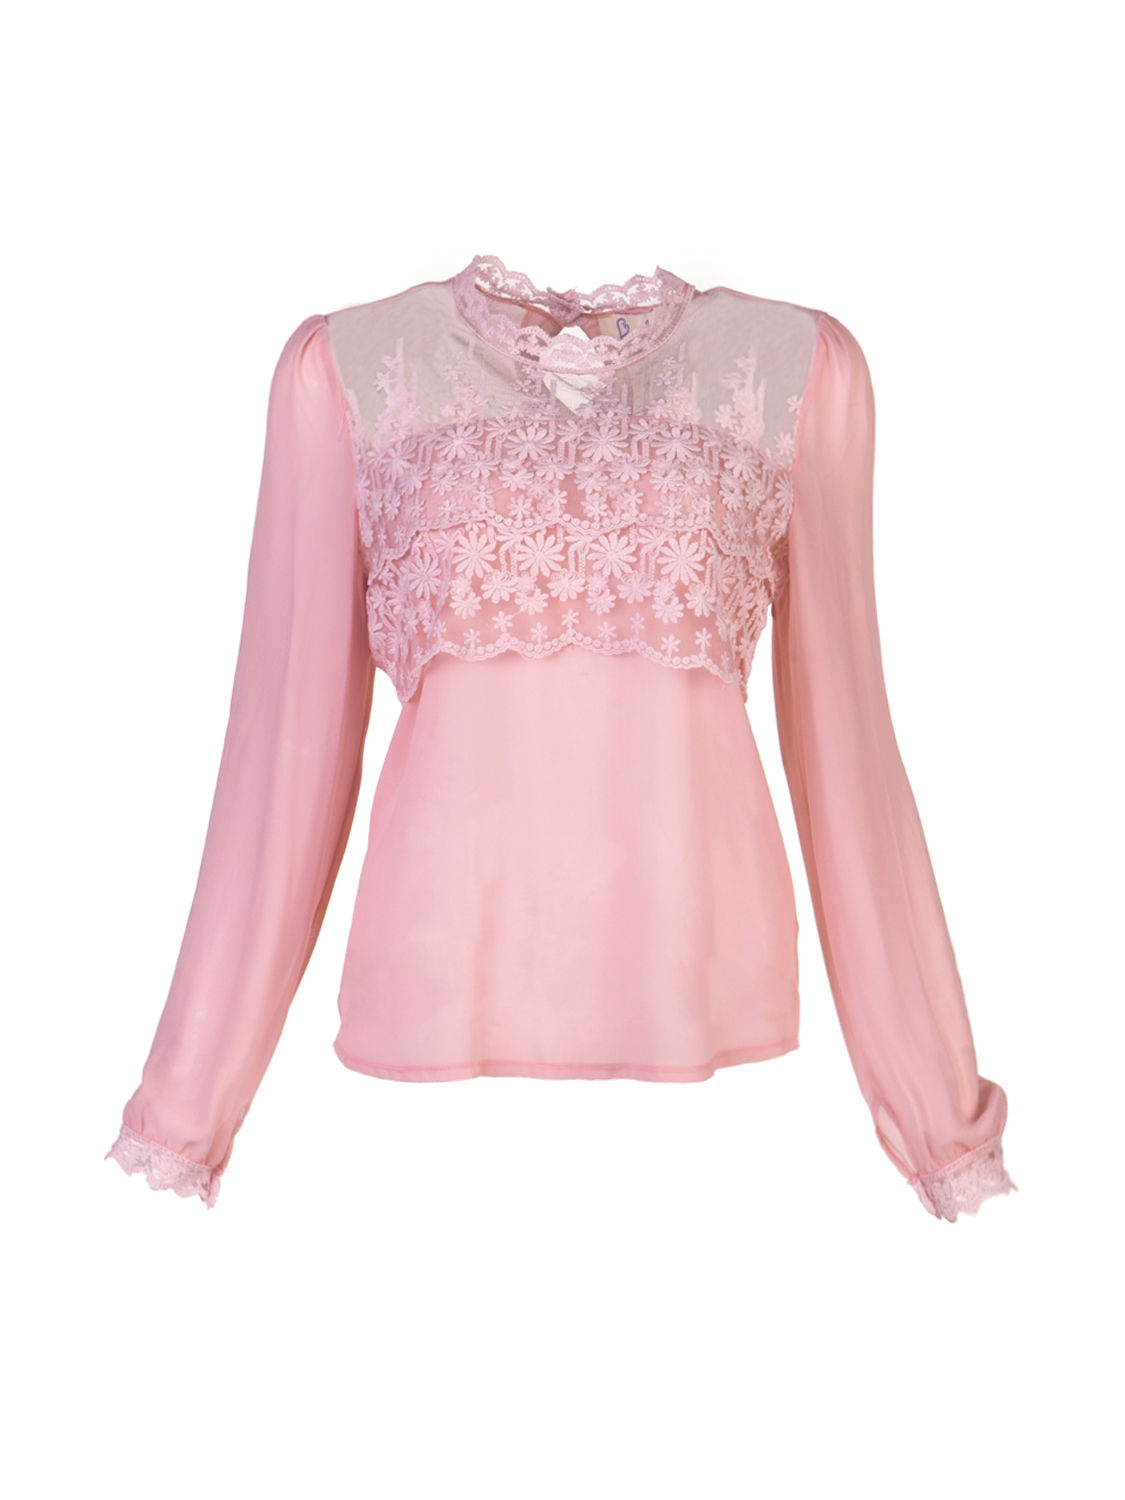 NEW-LADIES-LACE-TOP-BLOUSE-VINTAGE-VICTORIAN-ROMANTIC-PASTEL-TAYLOR-FORMAL-CUTE